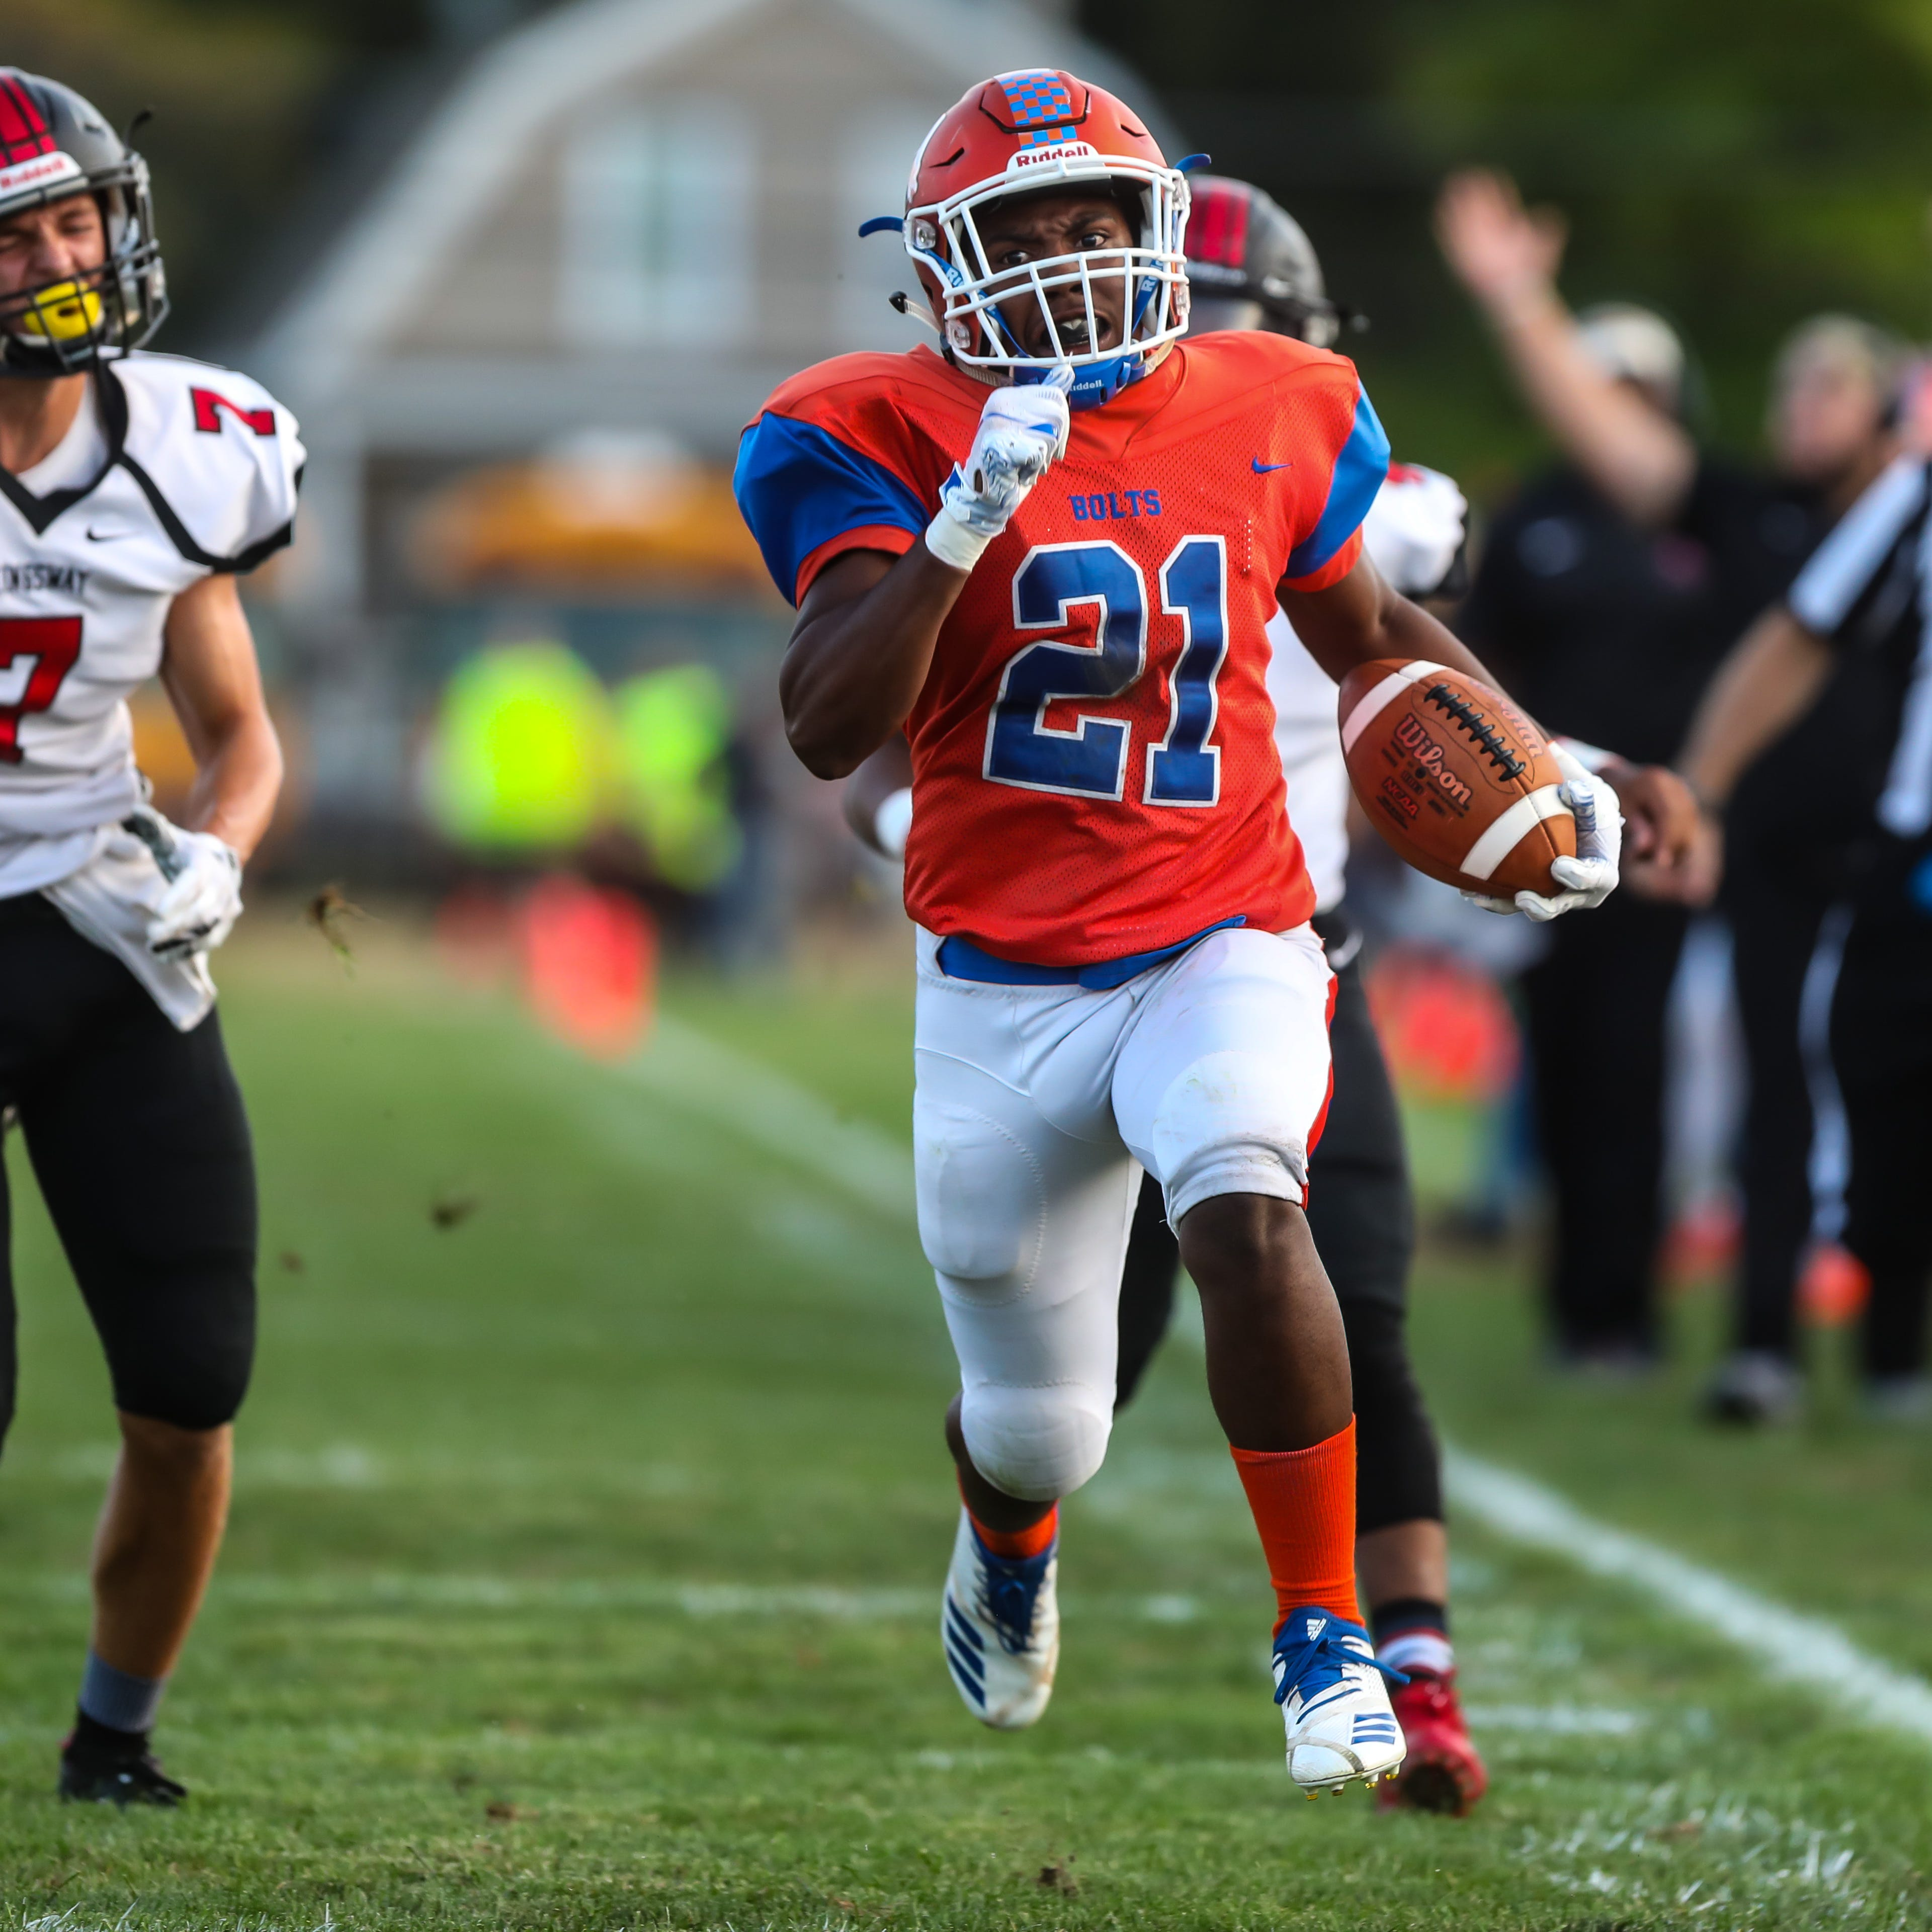 Dashon Byers of Millville takes off on a long run against Kingsway at Millville High School, September 21, 2018.